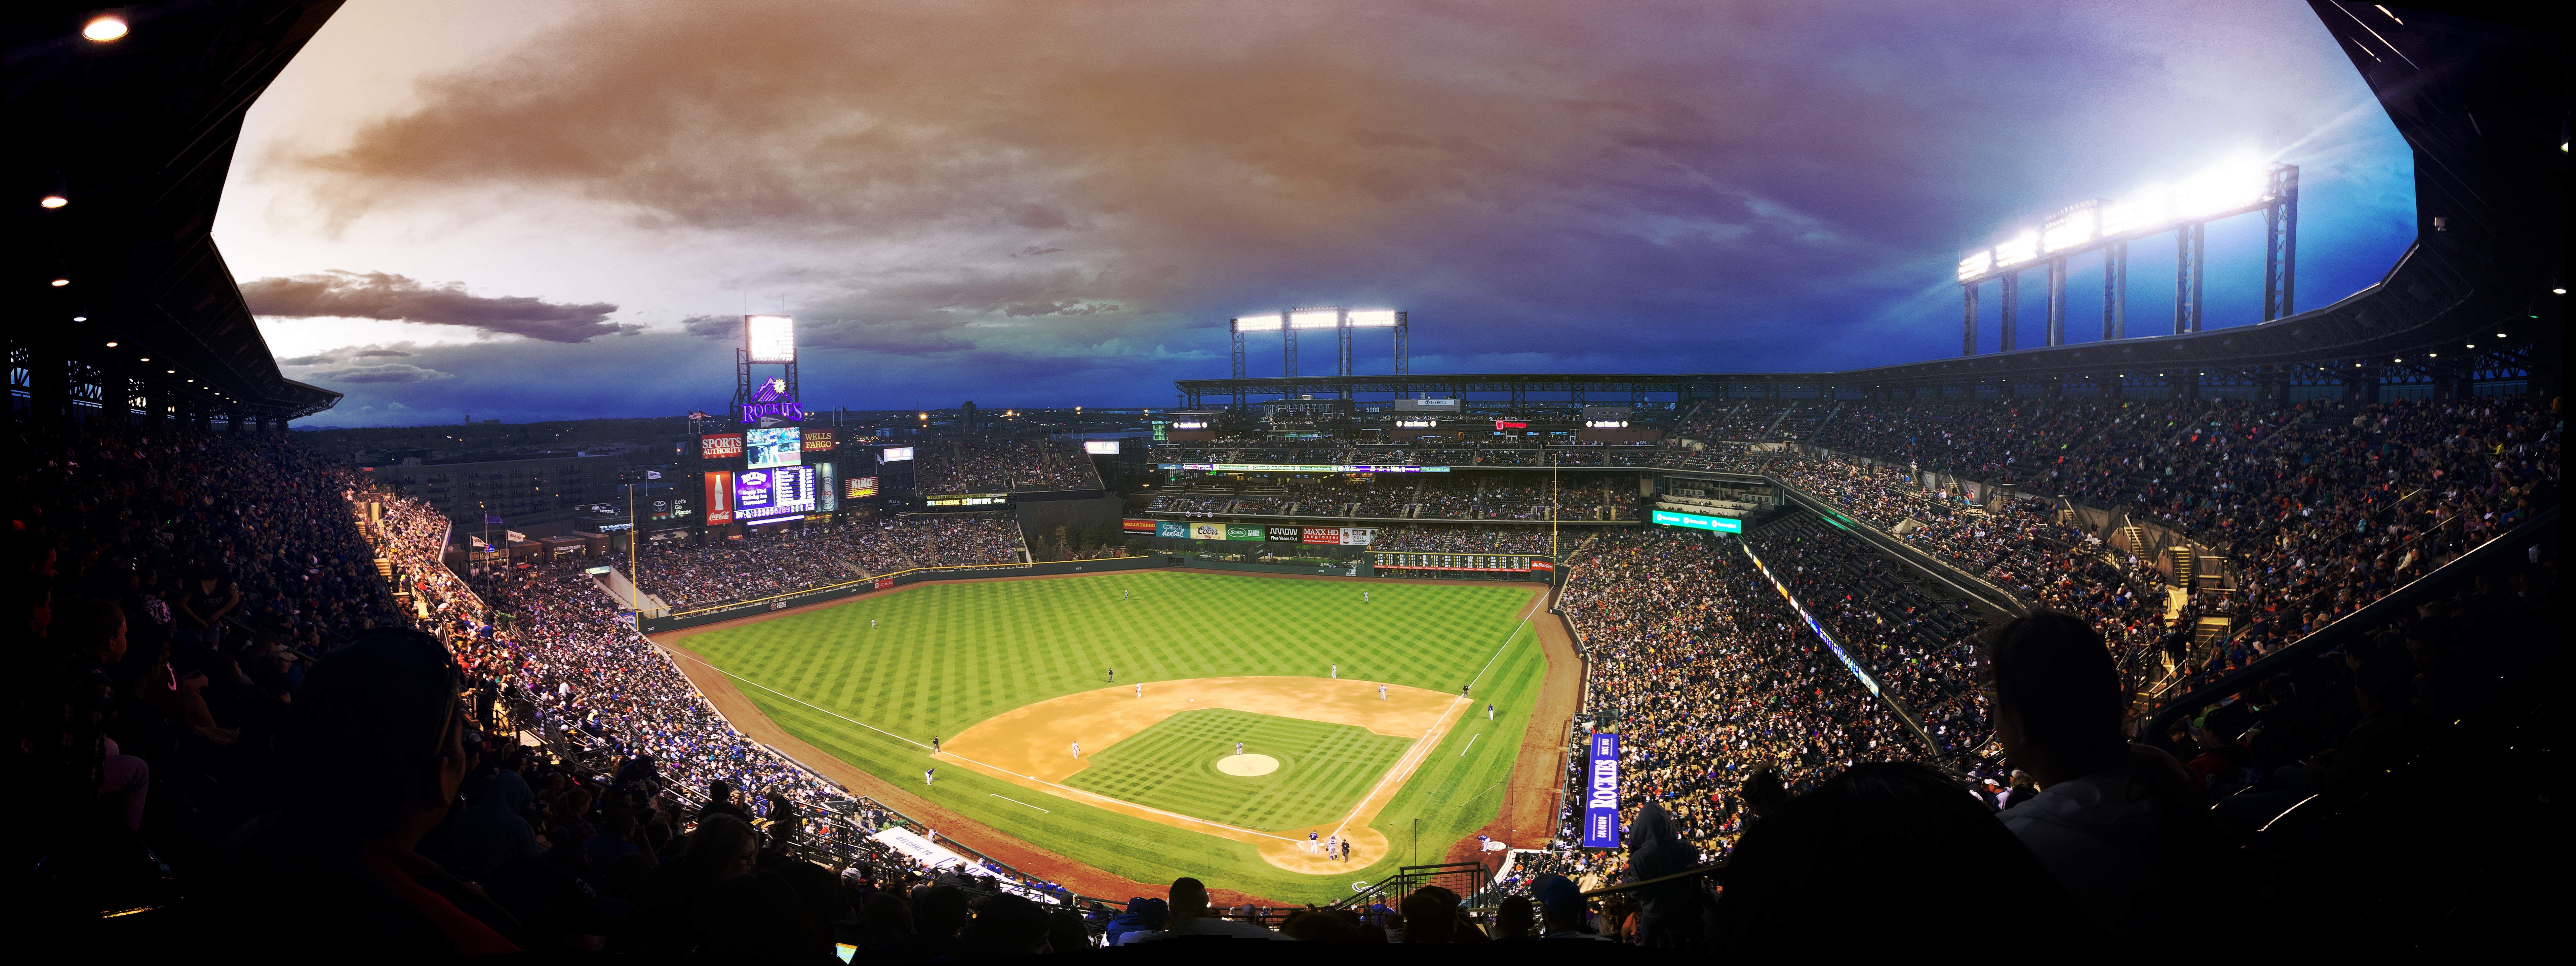 pexels-photo-89699_BASEBALL-stadium